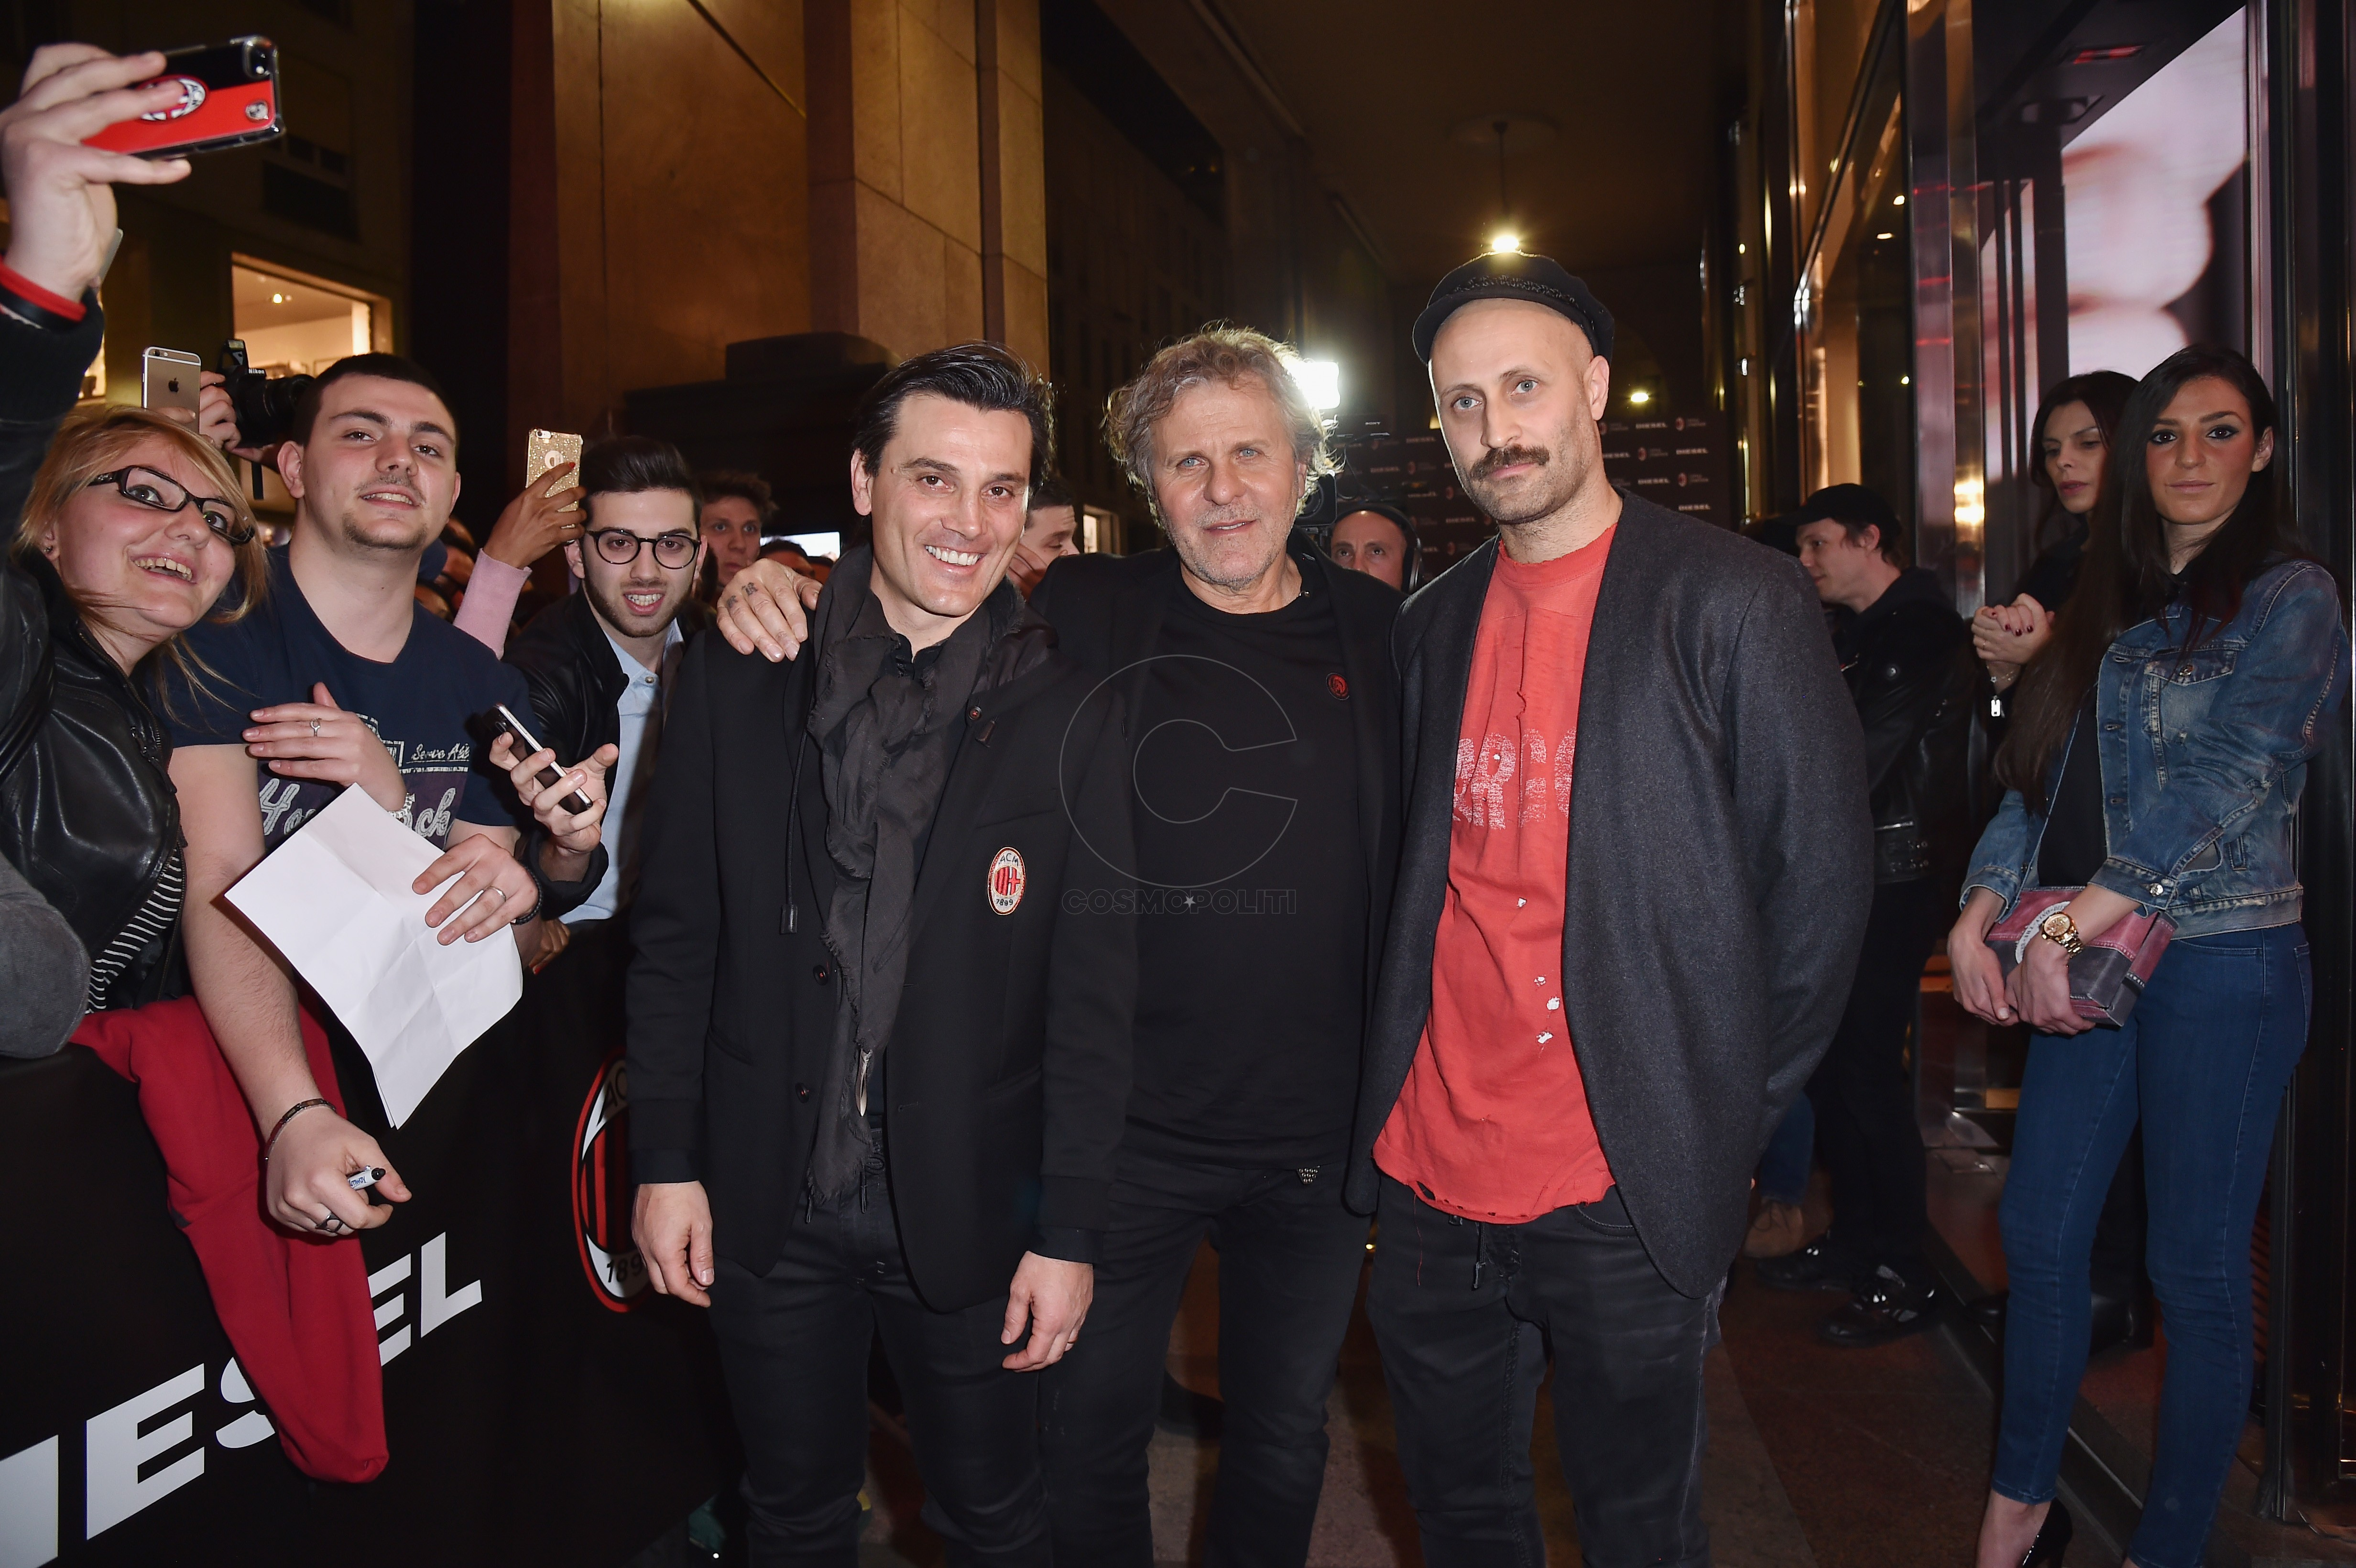 MILAN, ITALY - MARCH 14: Vincenzo Montella, Renzo Rosso and Andrea Rosso attend The New Bomber Presentation at the Diesel Store on March 14, 2017 in Milan, Italy. (Photo by Jacopo Raule/Getty Images for Diesel)